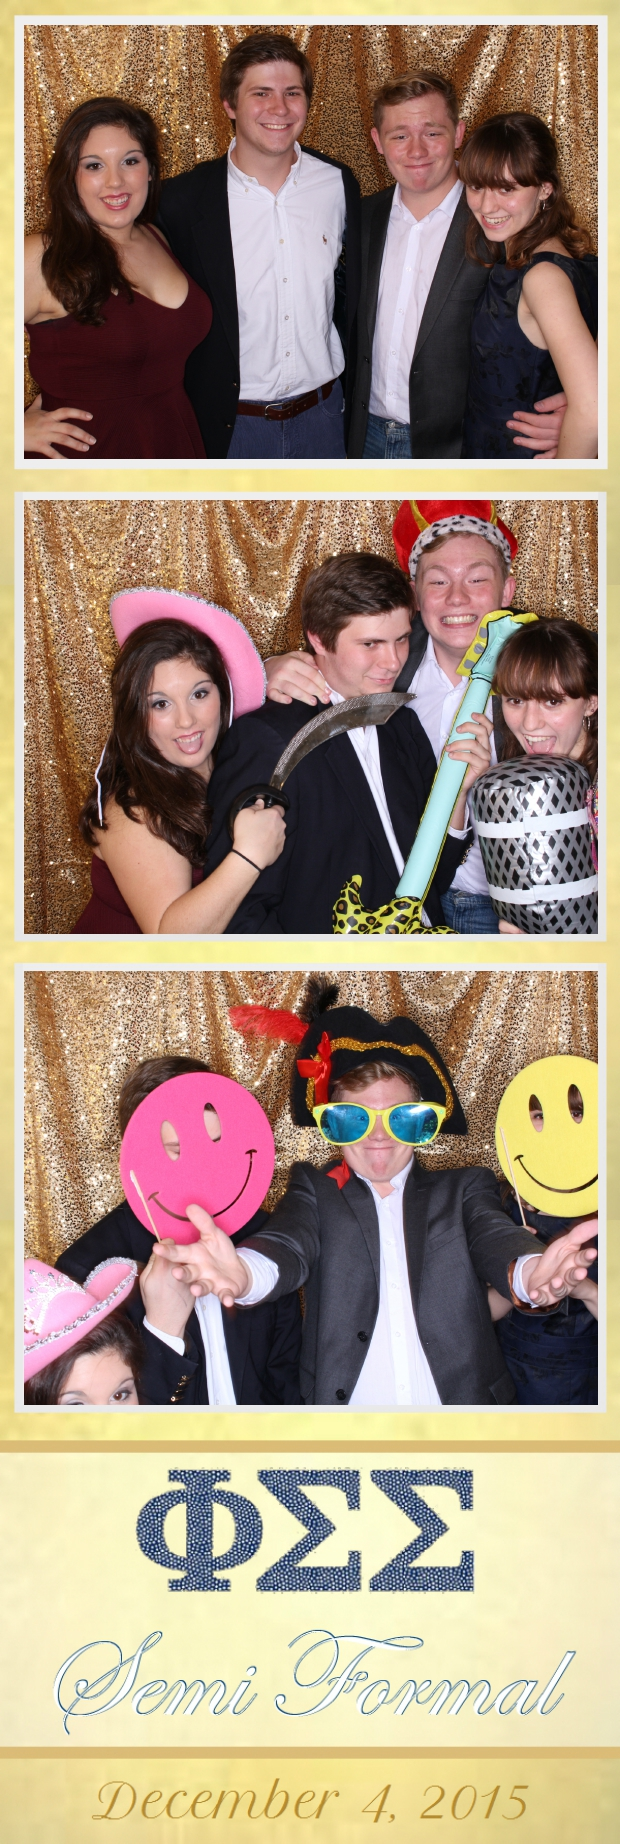 Guest House Events Photo Booth Phi Sigma Sigma Semi Formal (41).jpg